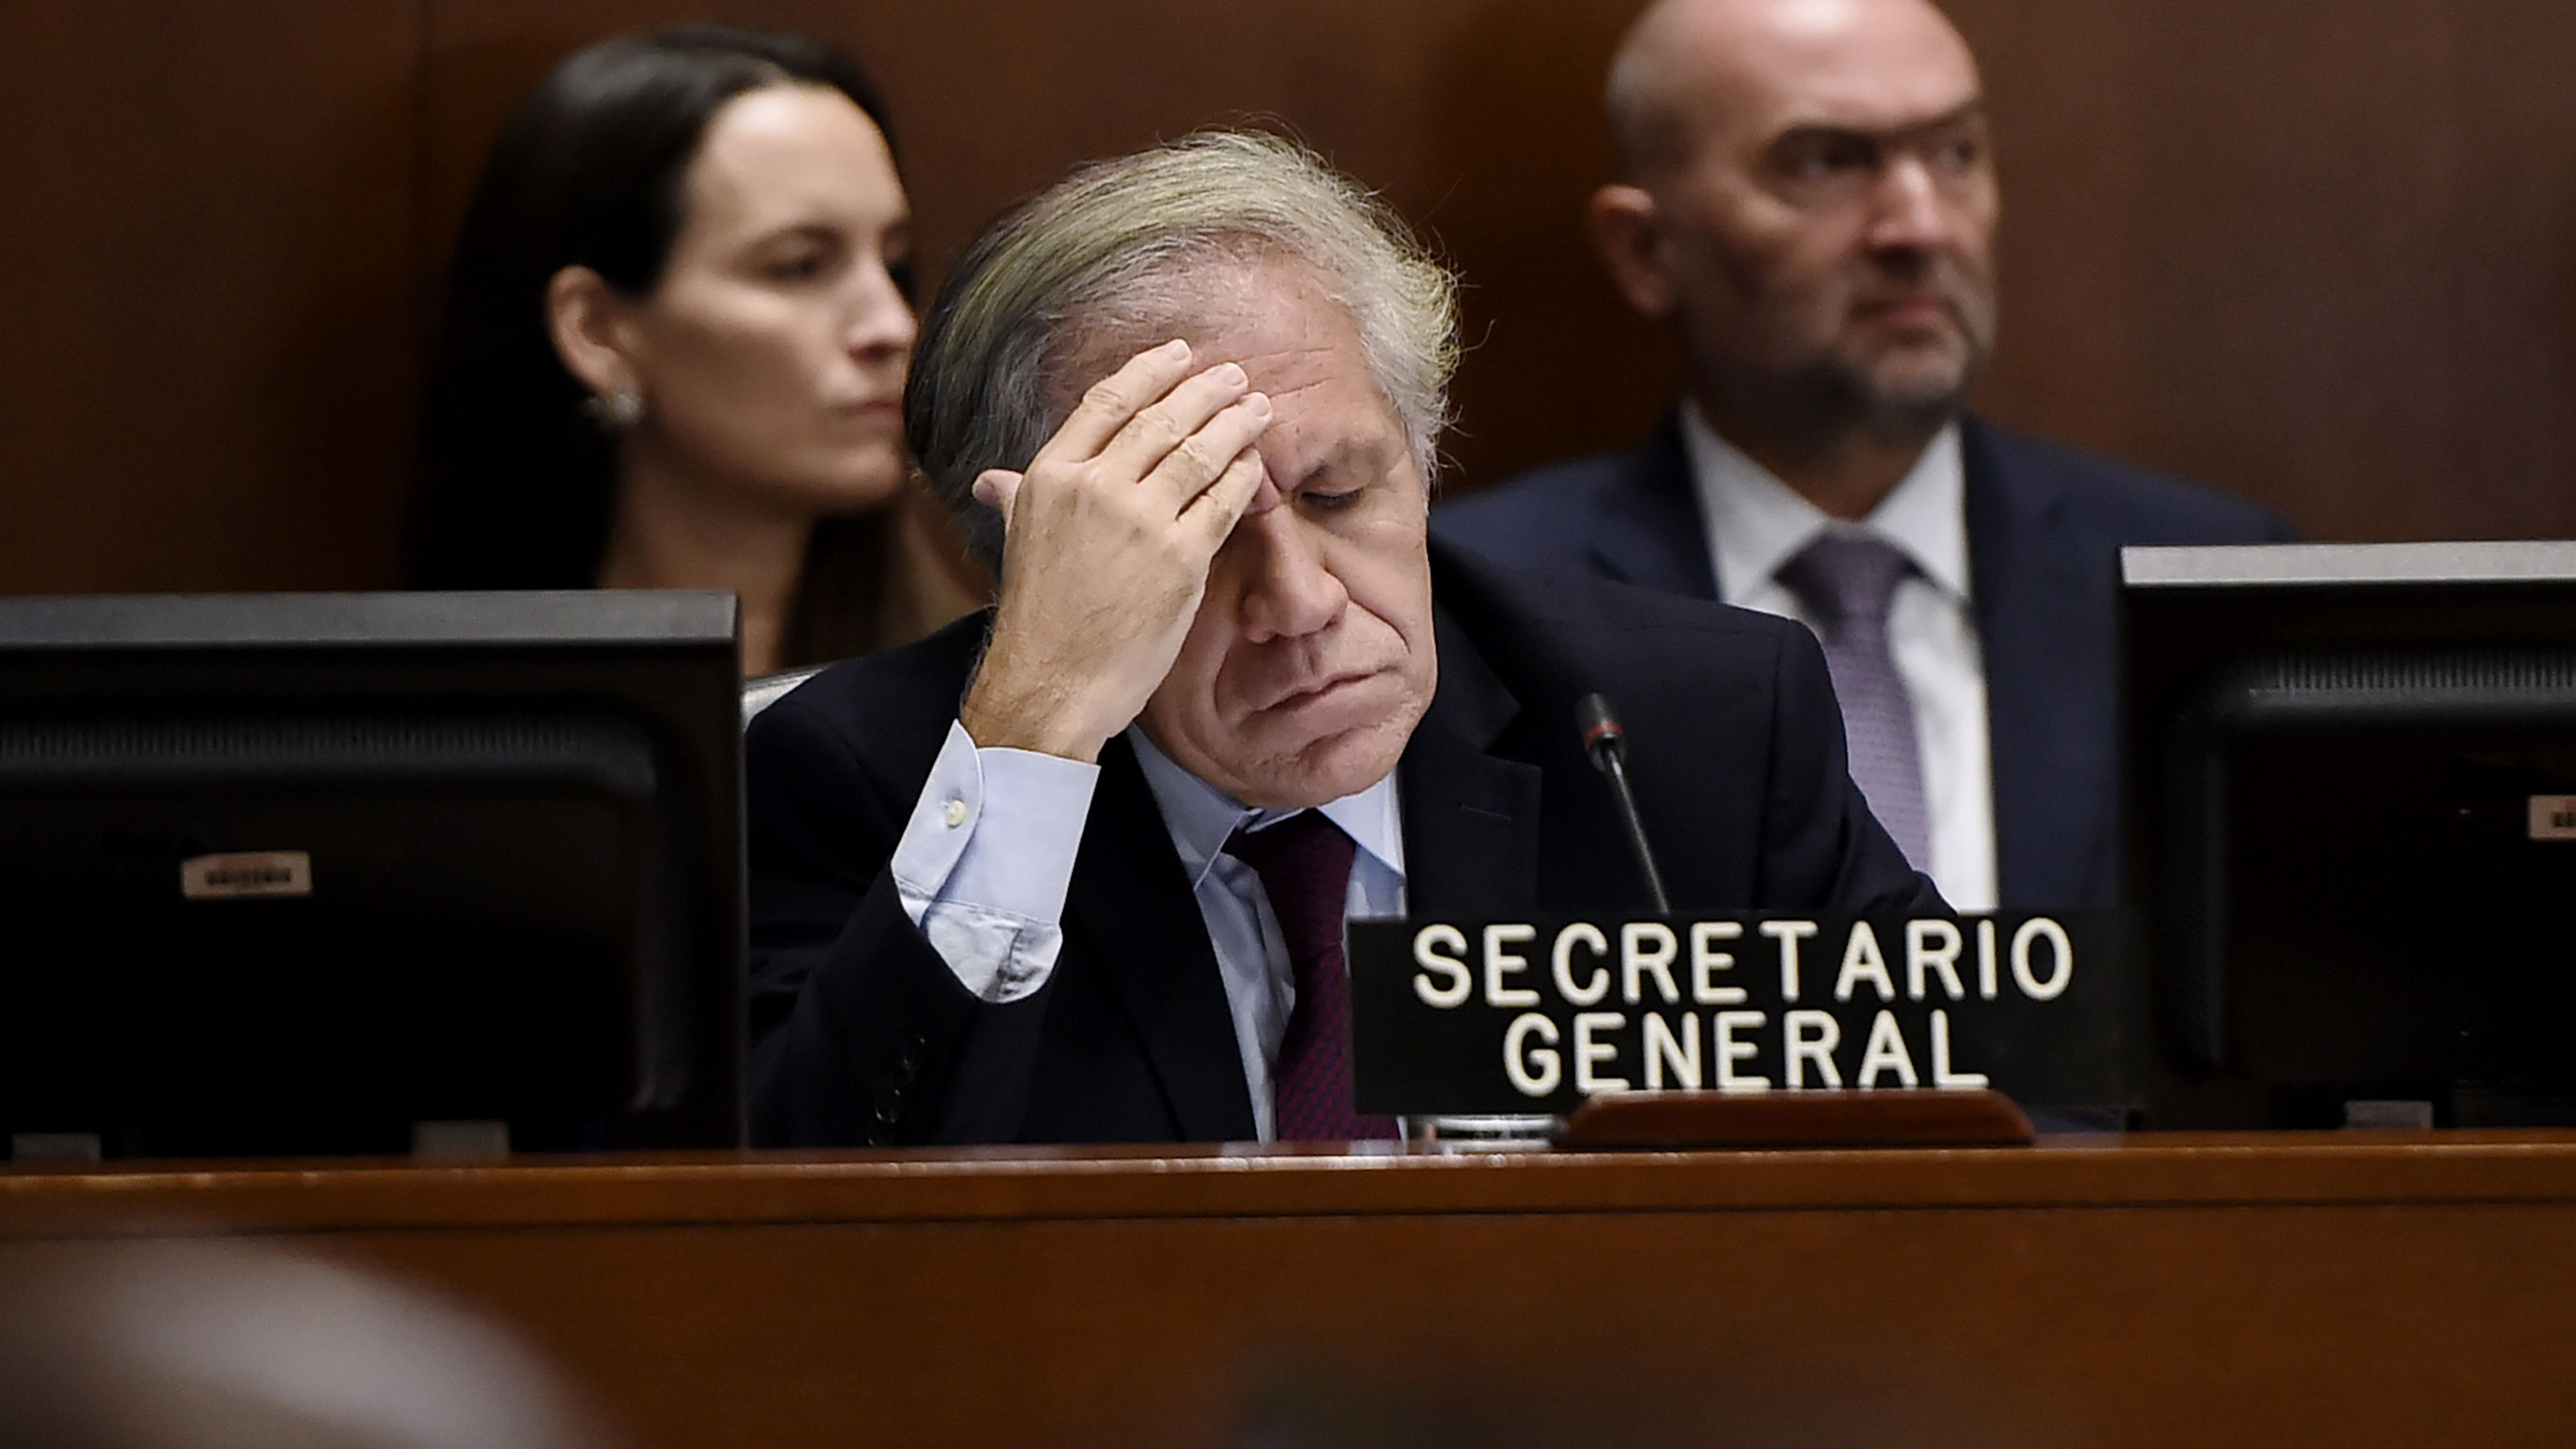 El secretario general de la OEA Luis Almagro (Photo by Olivier Douliery / AFP)